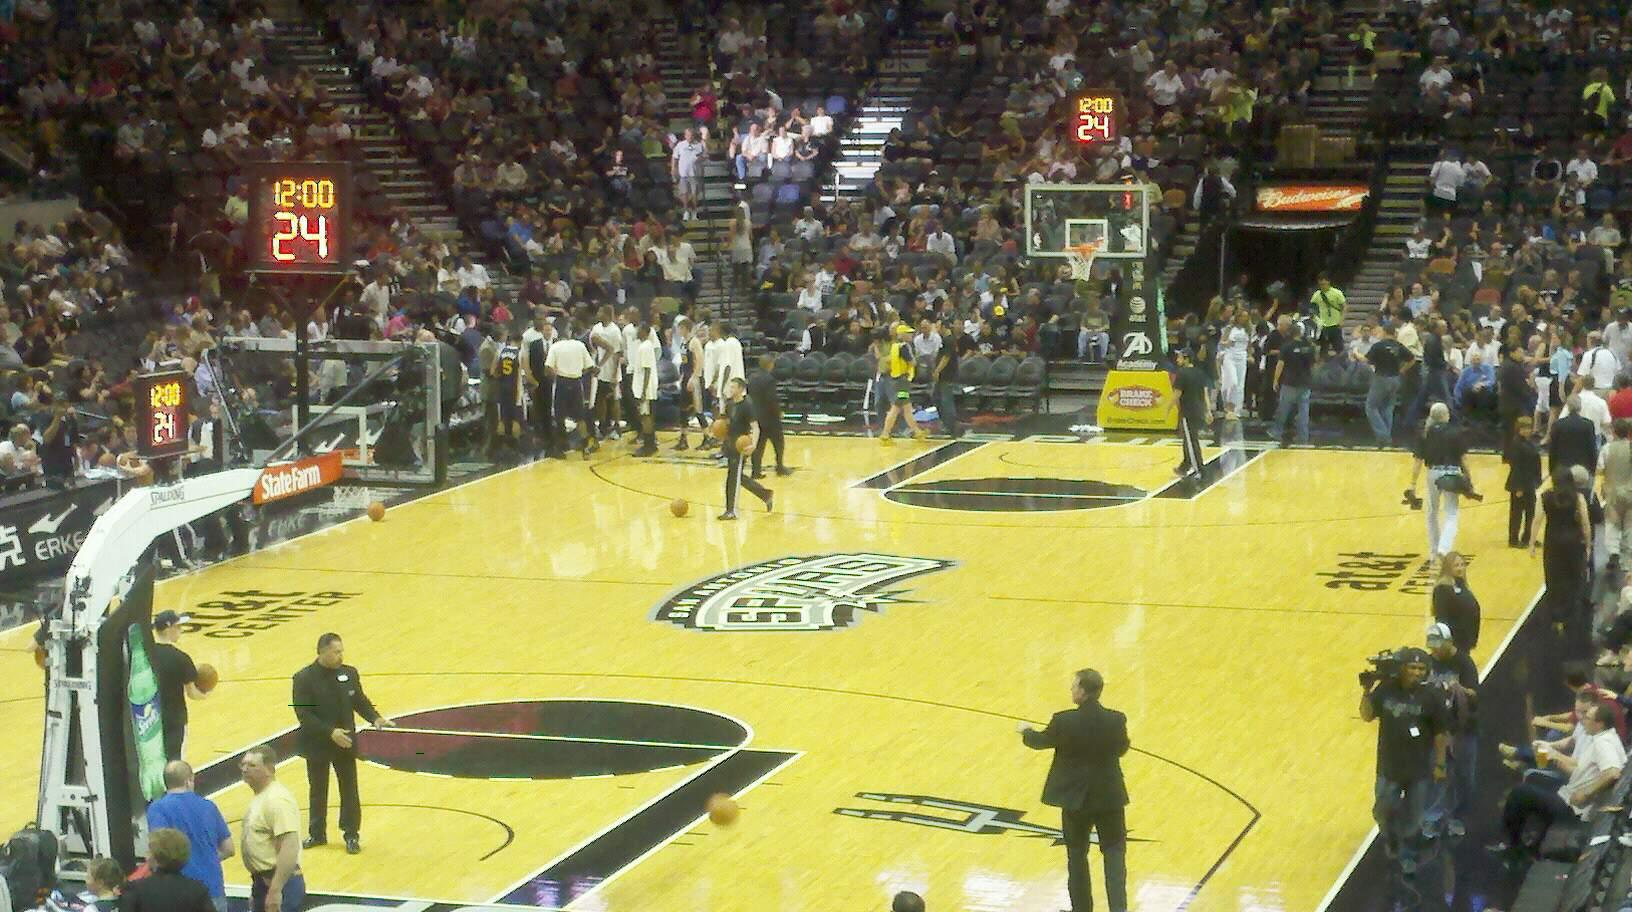 AT&T Center Section 127 Row 23 Seat 5